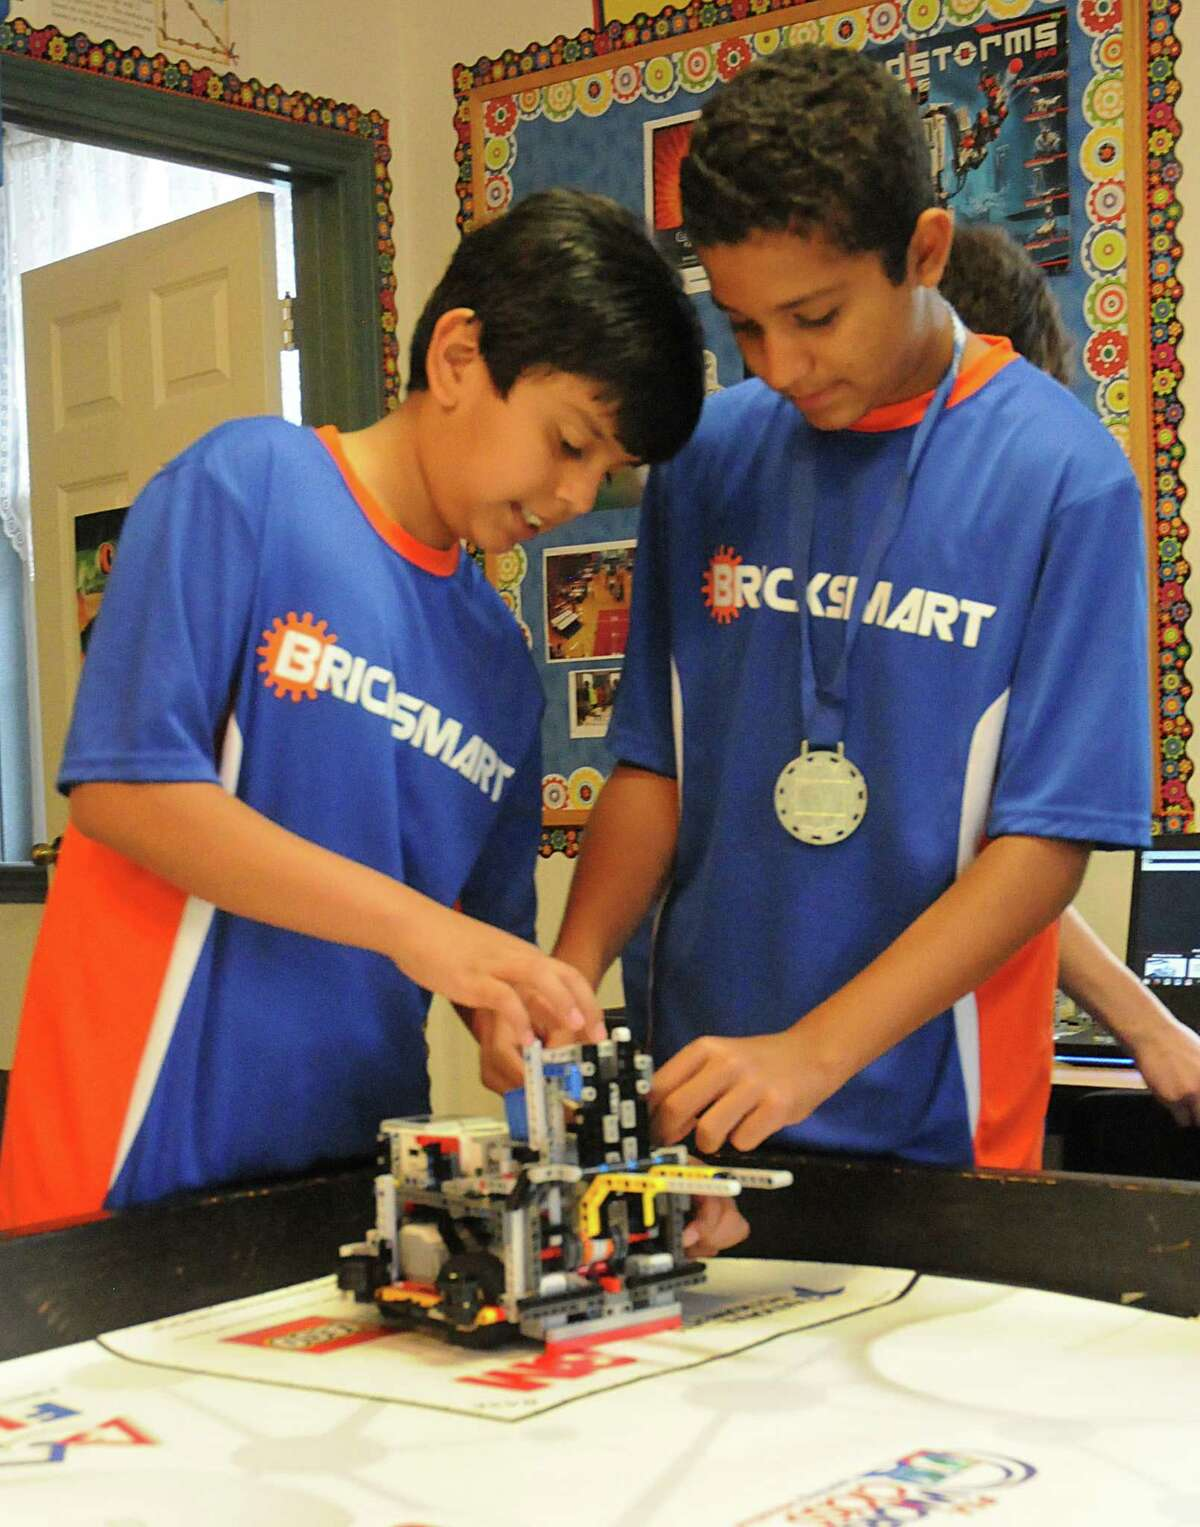 Rubicon Academy, 14211 Horseshoe Bend in south Montgomery County, robotics team practice. Photograph by David Hopper.